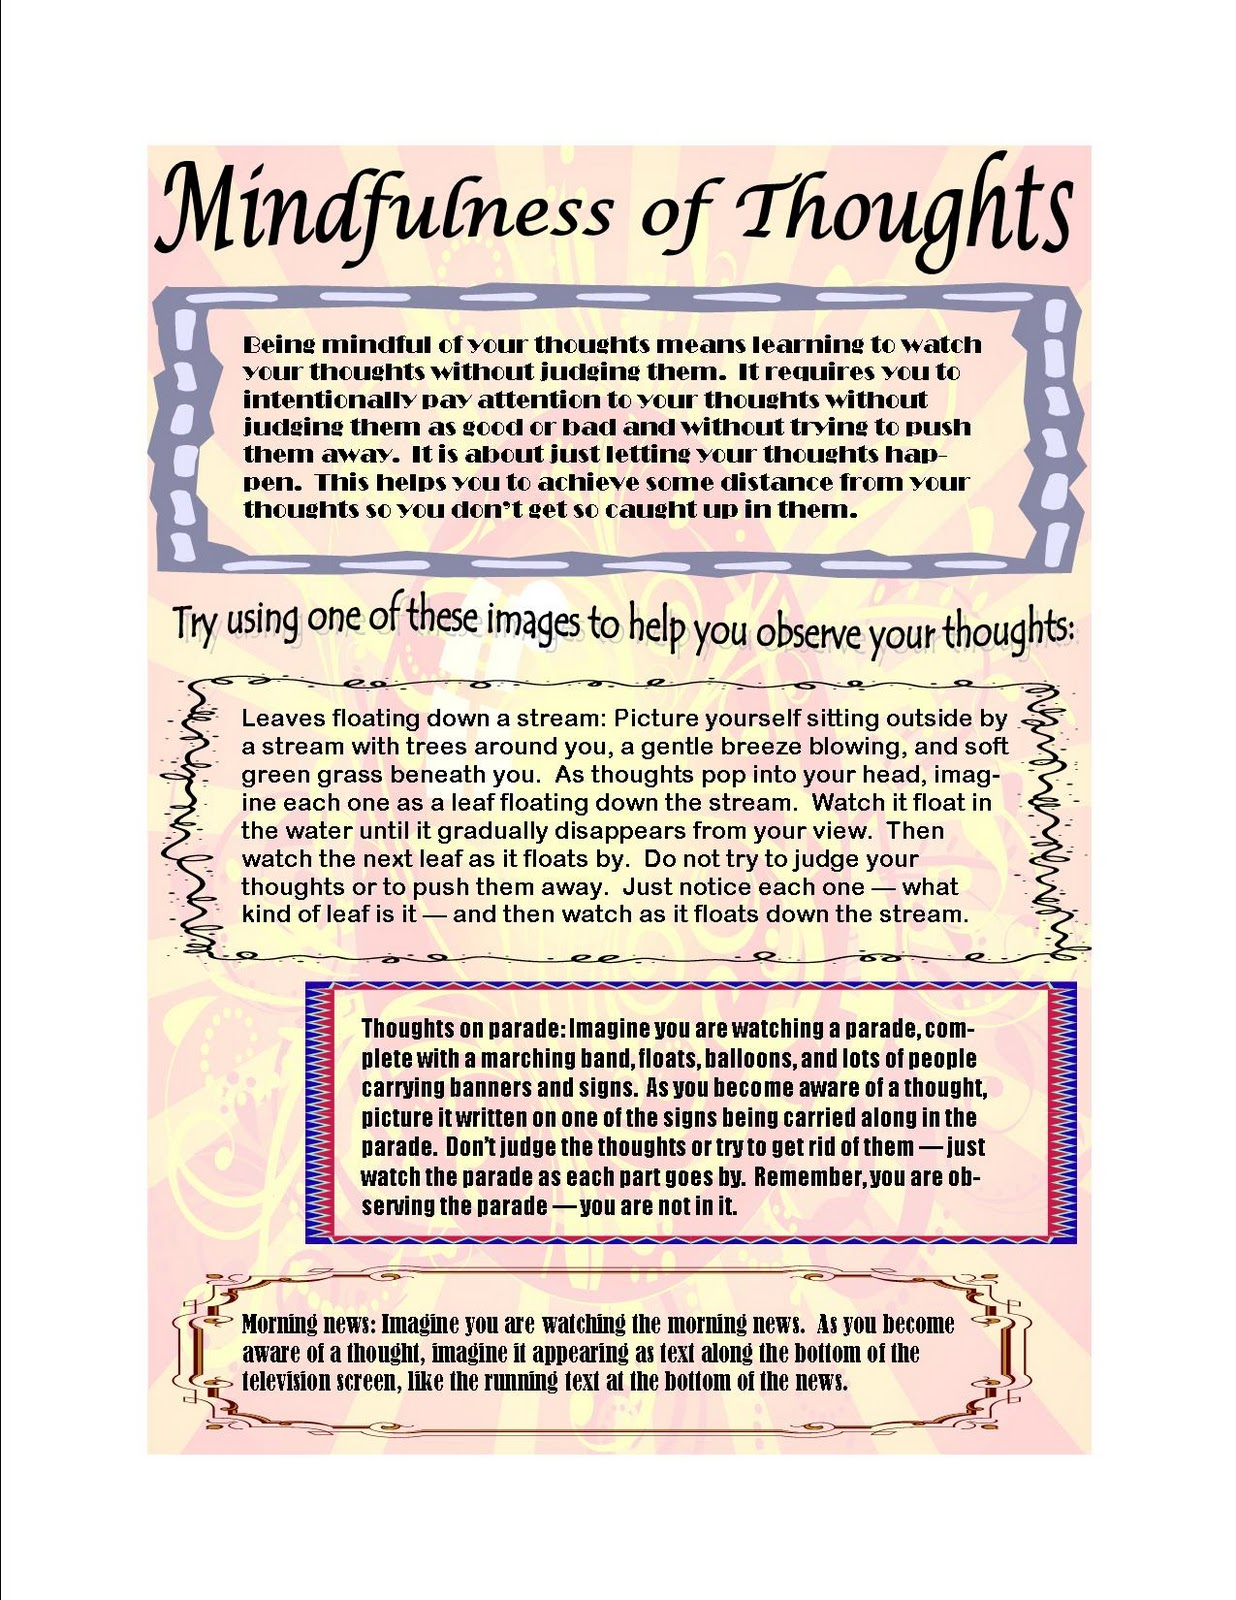 This Is Me: Another mindfulness handout - mindfulness of thoughts